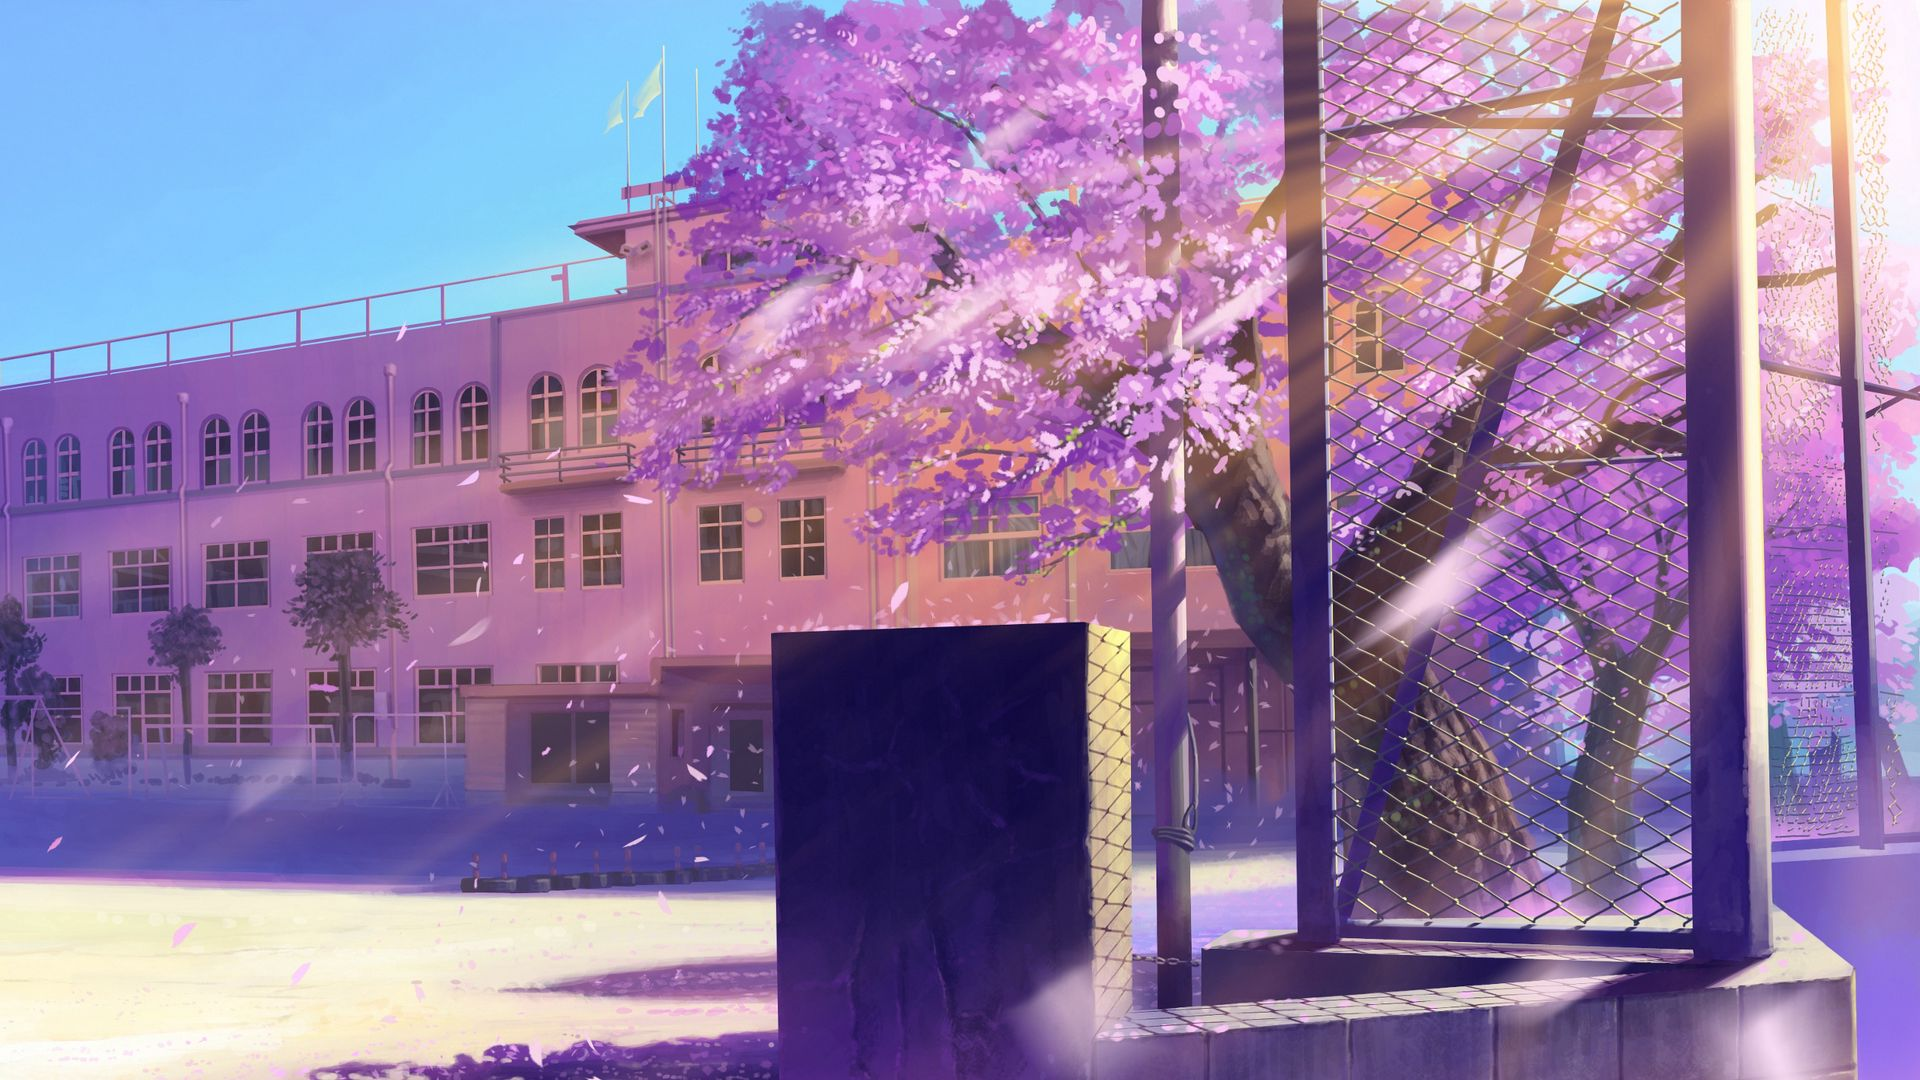 Unduh 750 Background Anime Full Hd Paling Keren